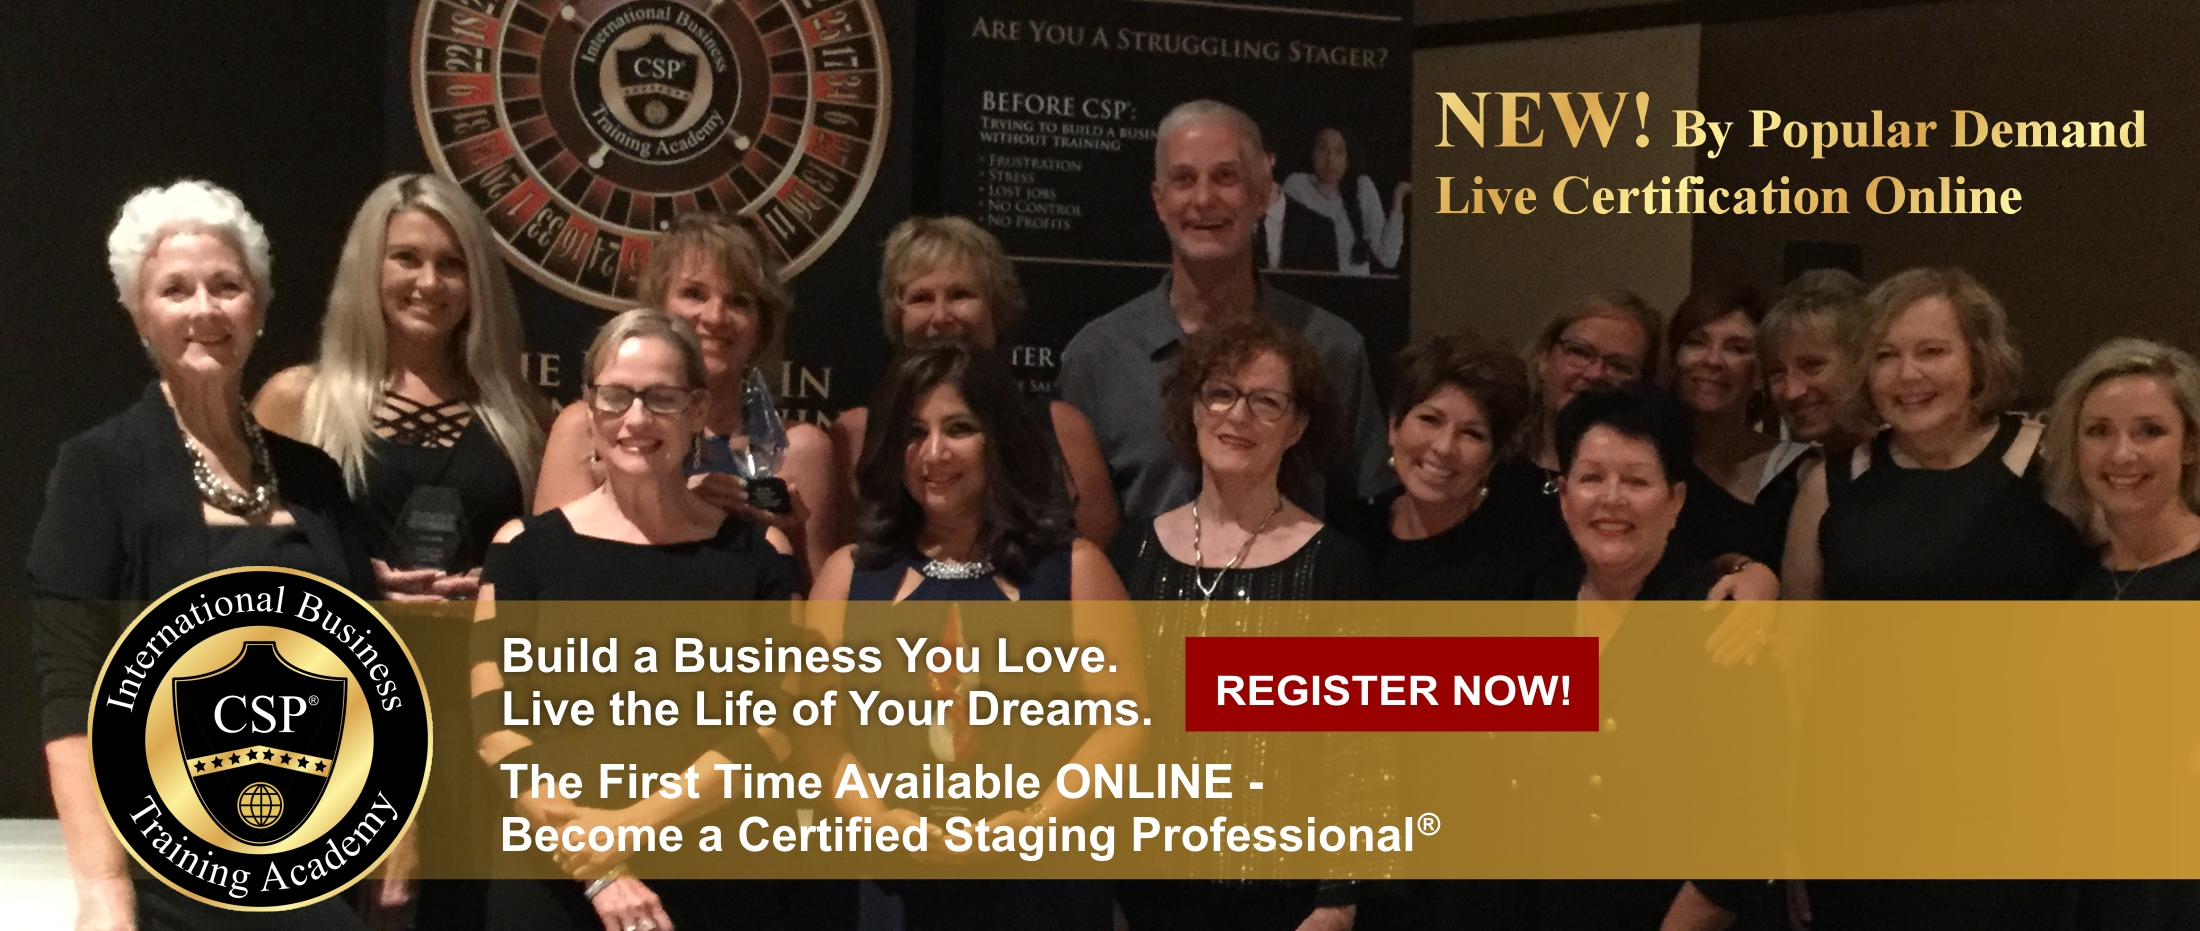 csp live certification banner with csp grads